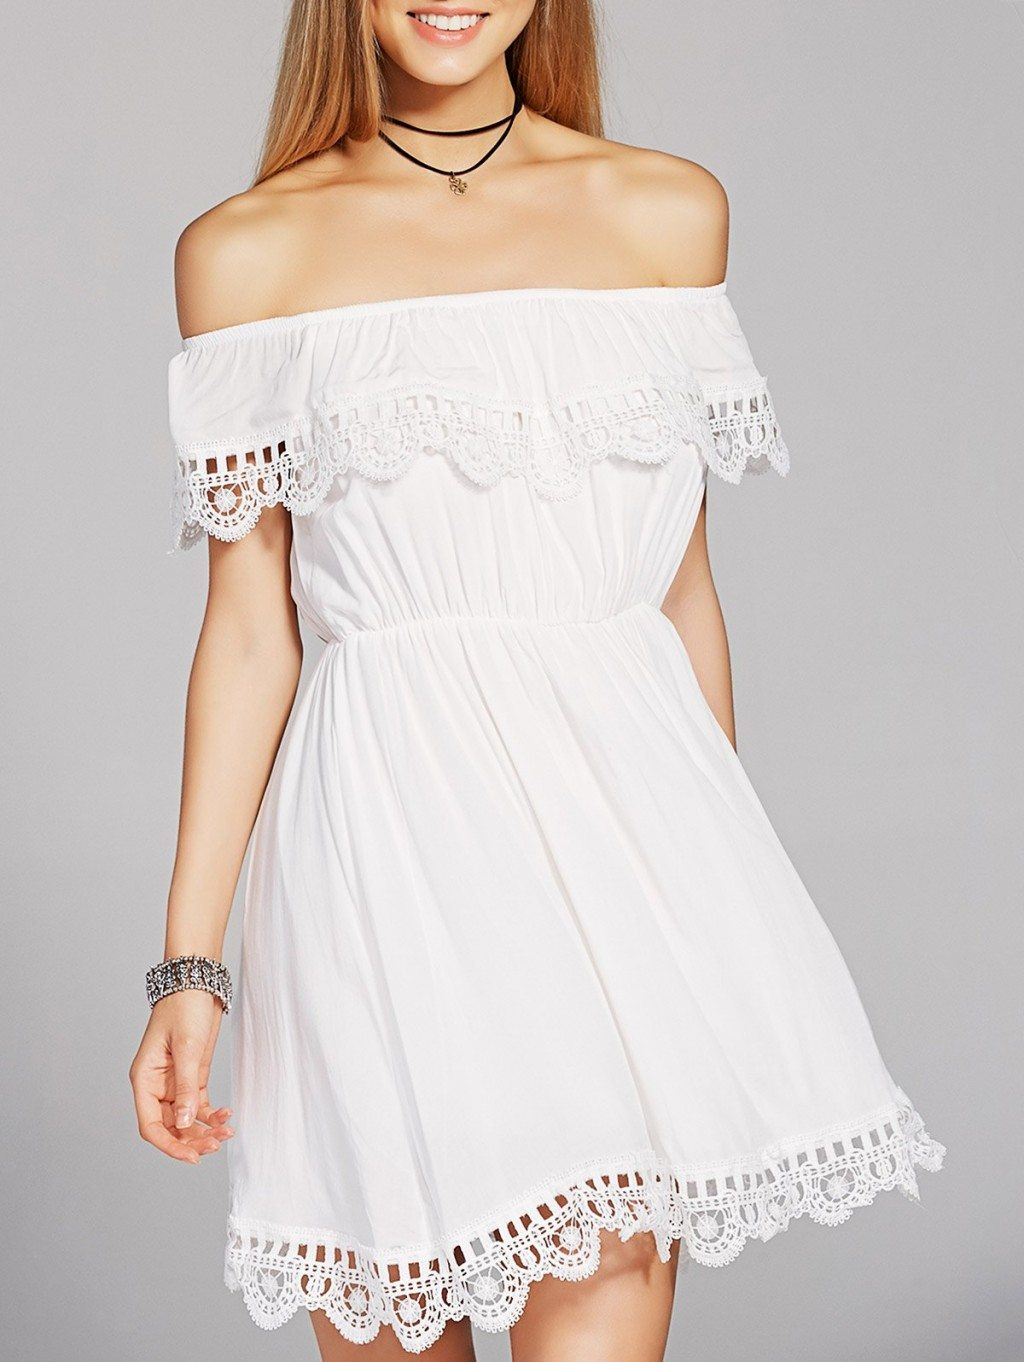 Stylish High Waisted Off The Shoulder Crochet A-Line Dress For Women